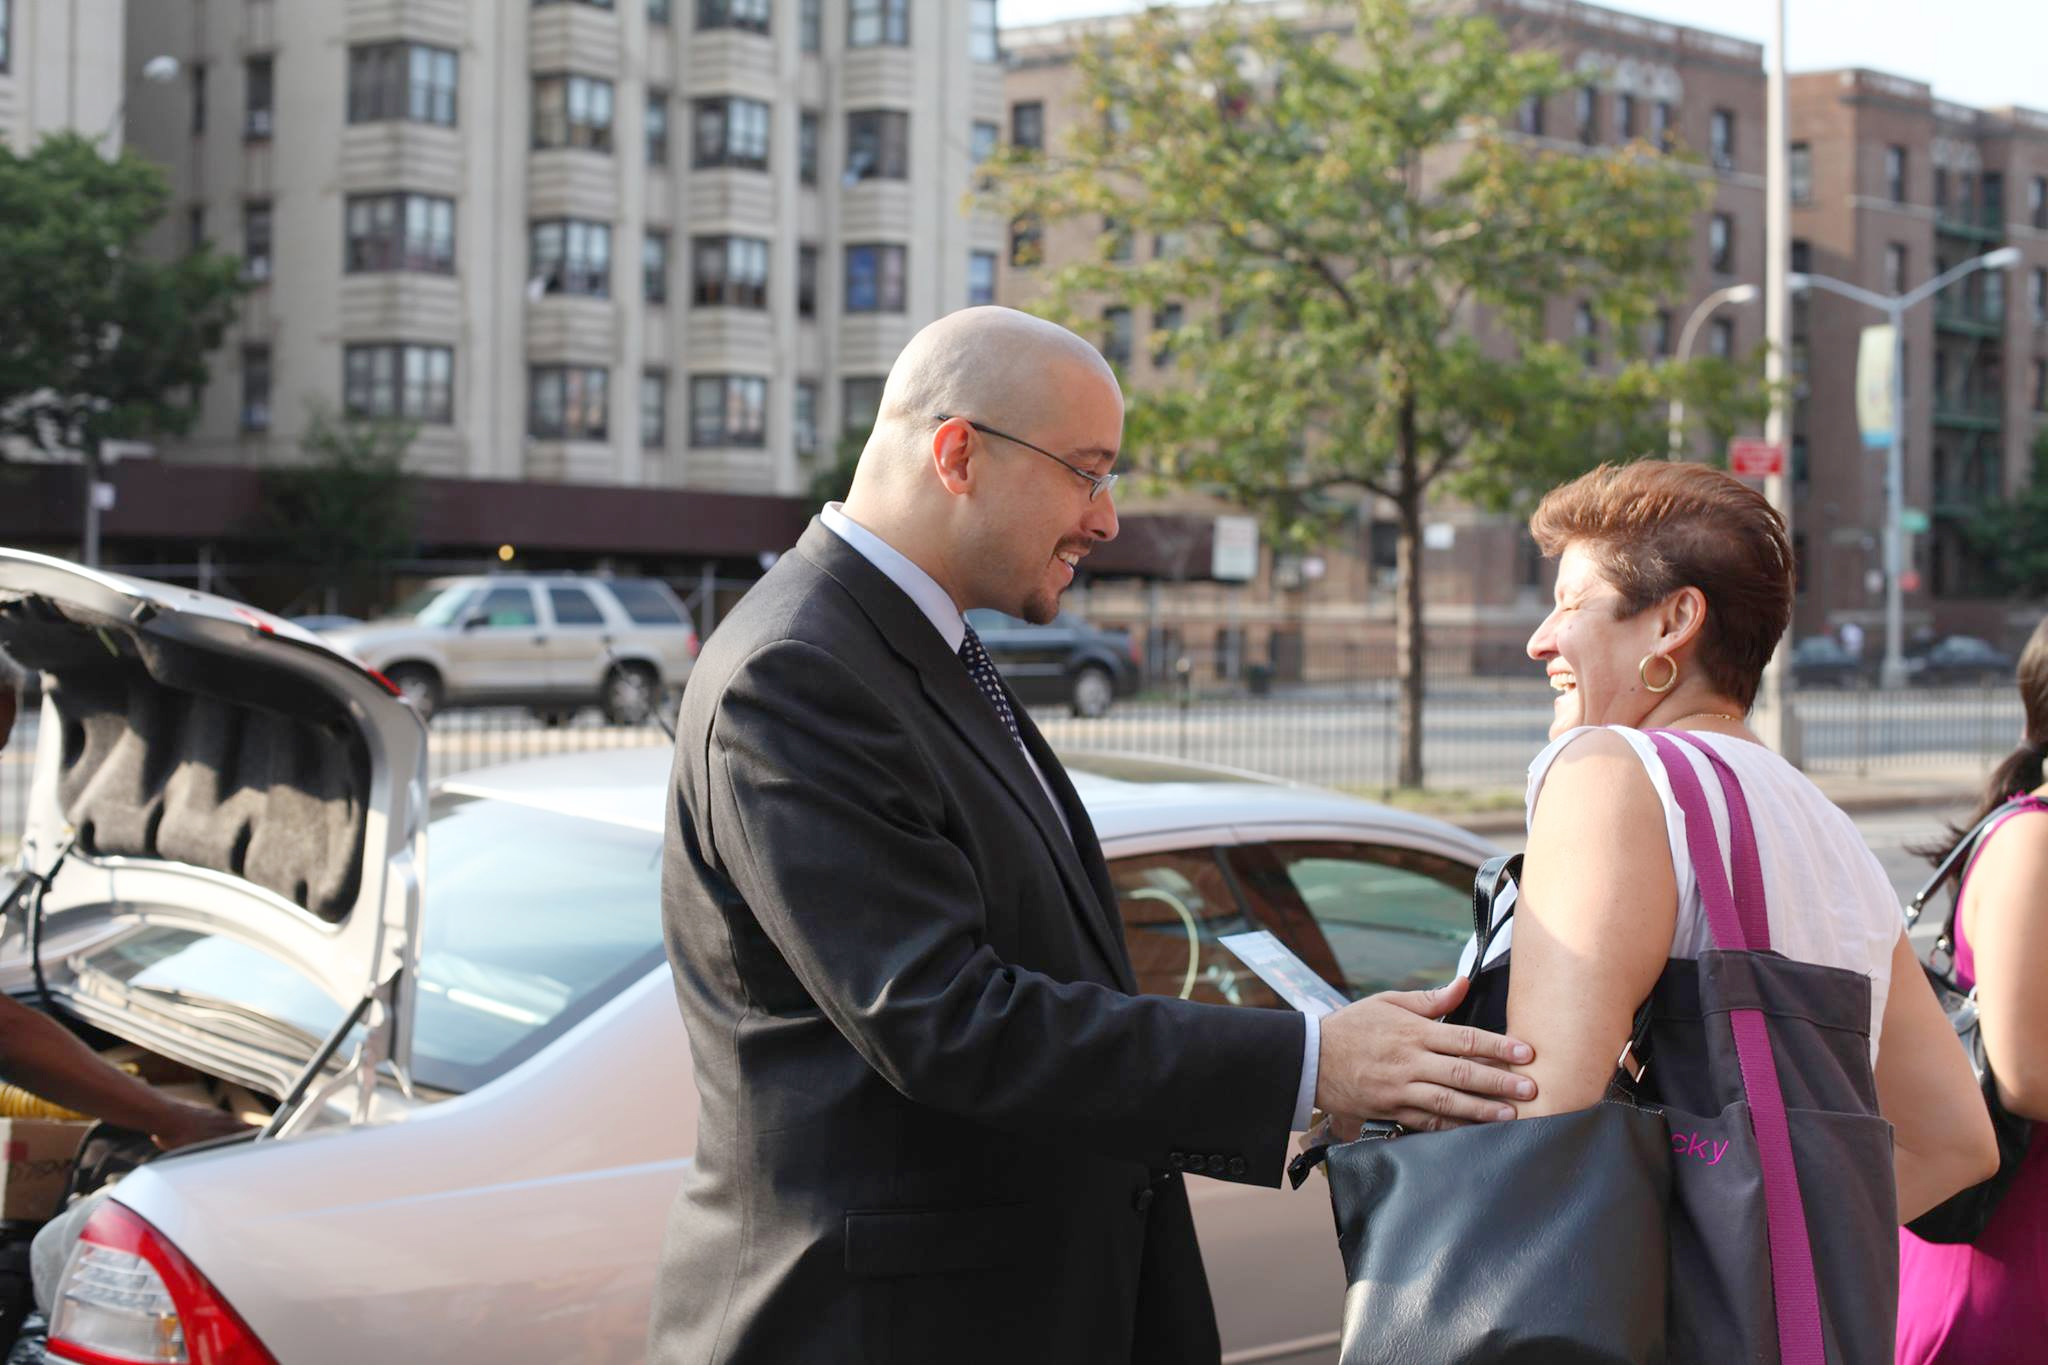 For the last 6 years, Gustavo Rivera has fought for the Bronx, increasing the minimum wage, bringing record funding to our schools, protecting tenants against landlord abuses, and passing paid family leave for families across the state.